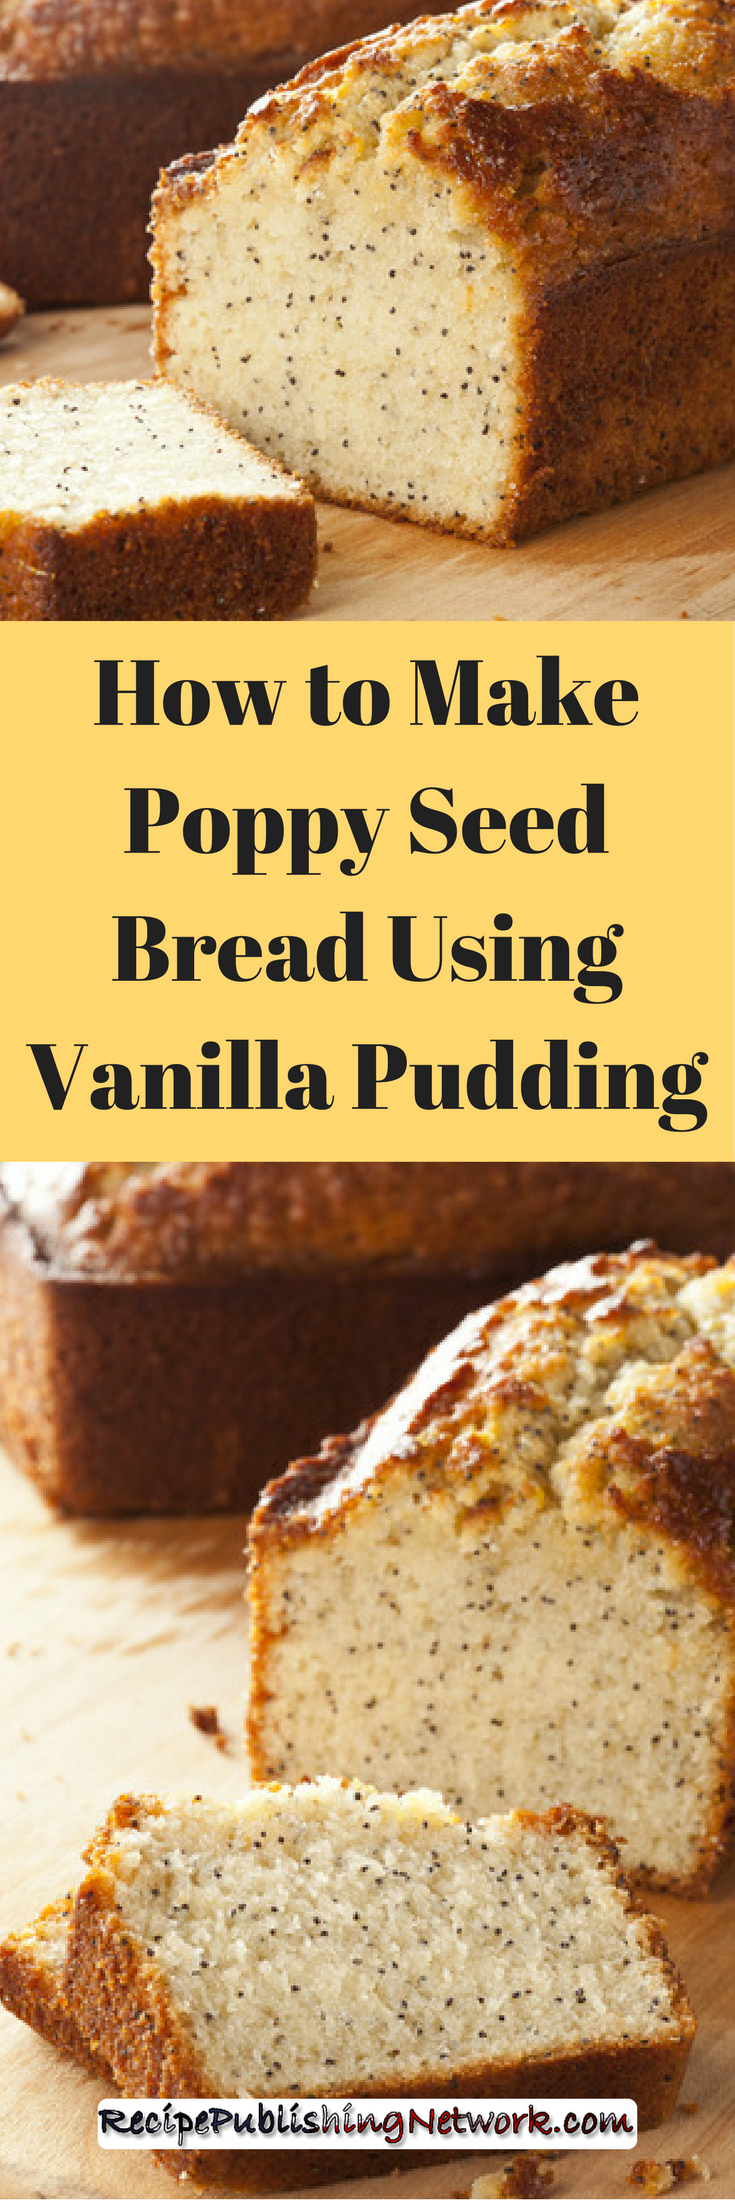 If you fancy bread that is more like a cake in texture and taste this delightful fresh baked loaf will fill the bill nicely. It is super easy to make because it use a few packaged mixes to help pull it all together.